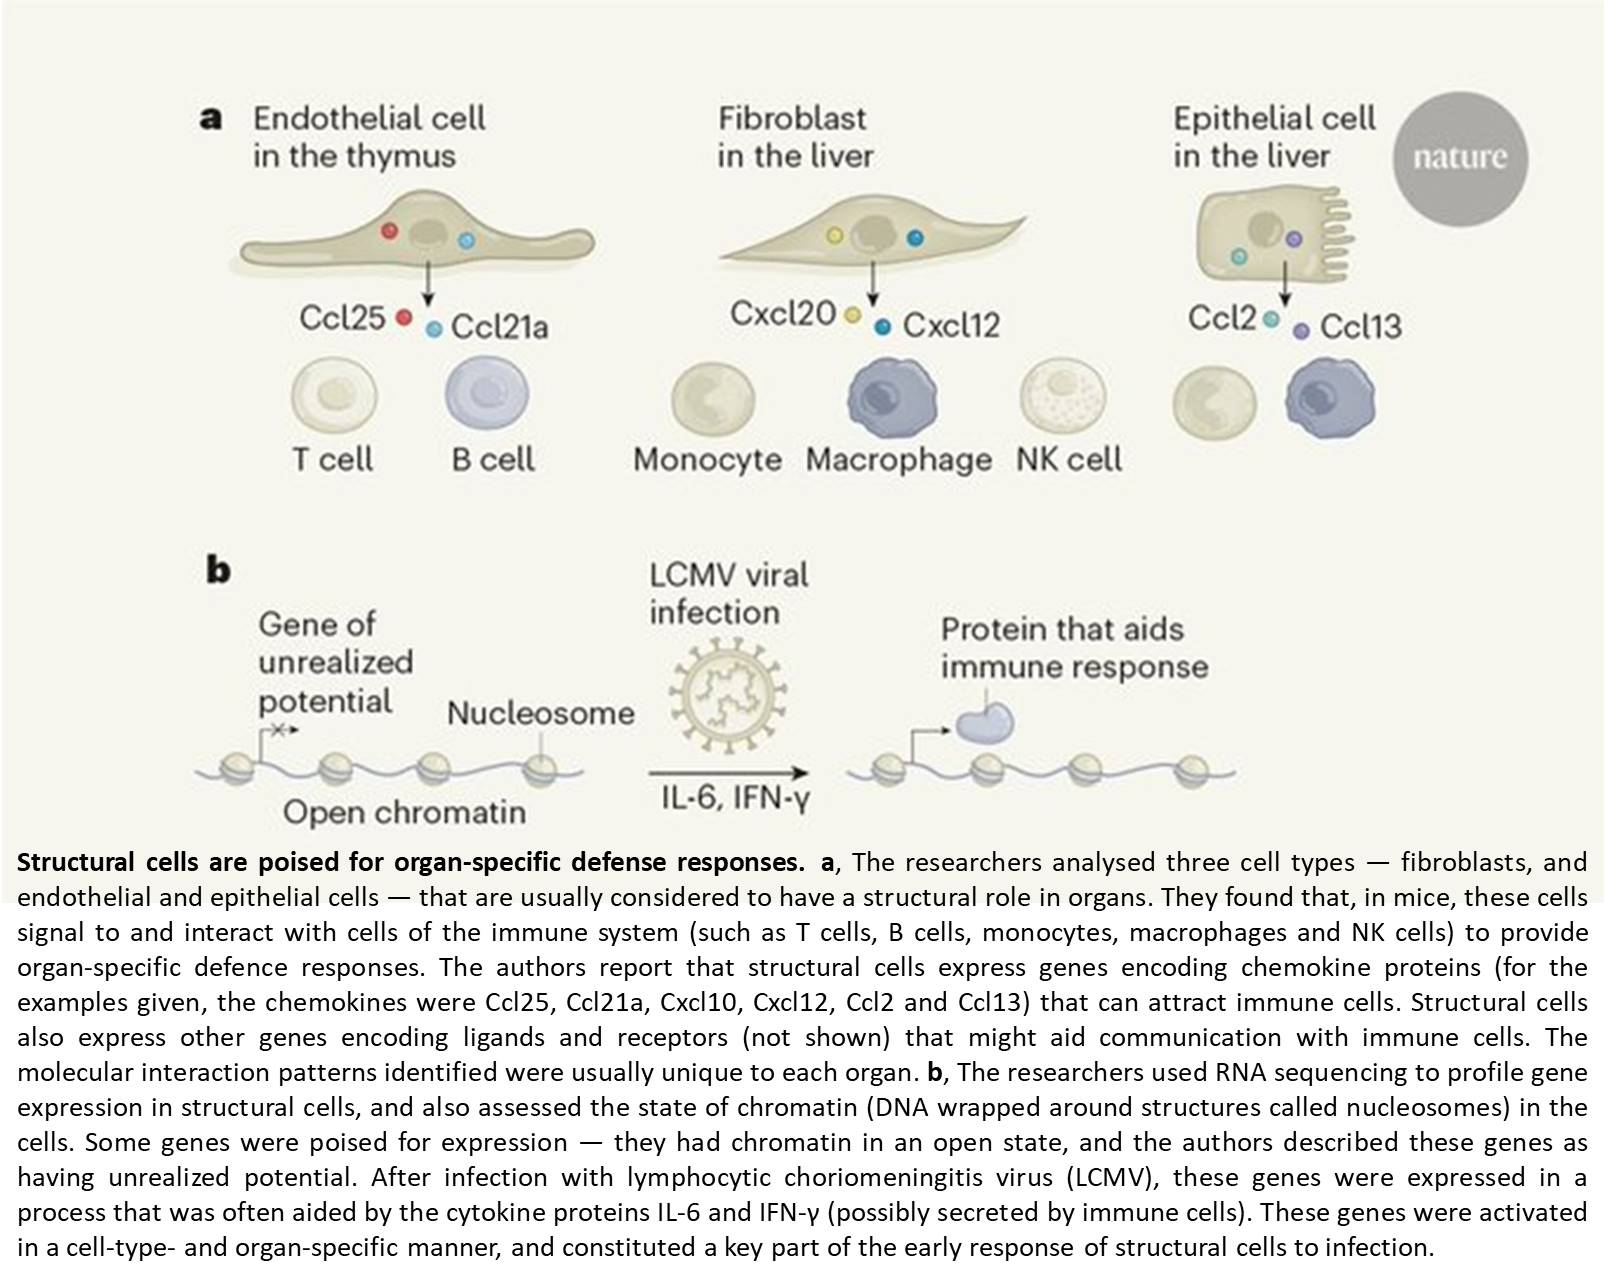 Structural cells of the body control immune function